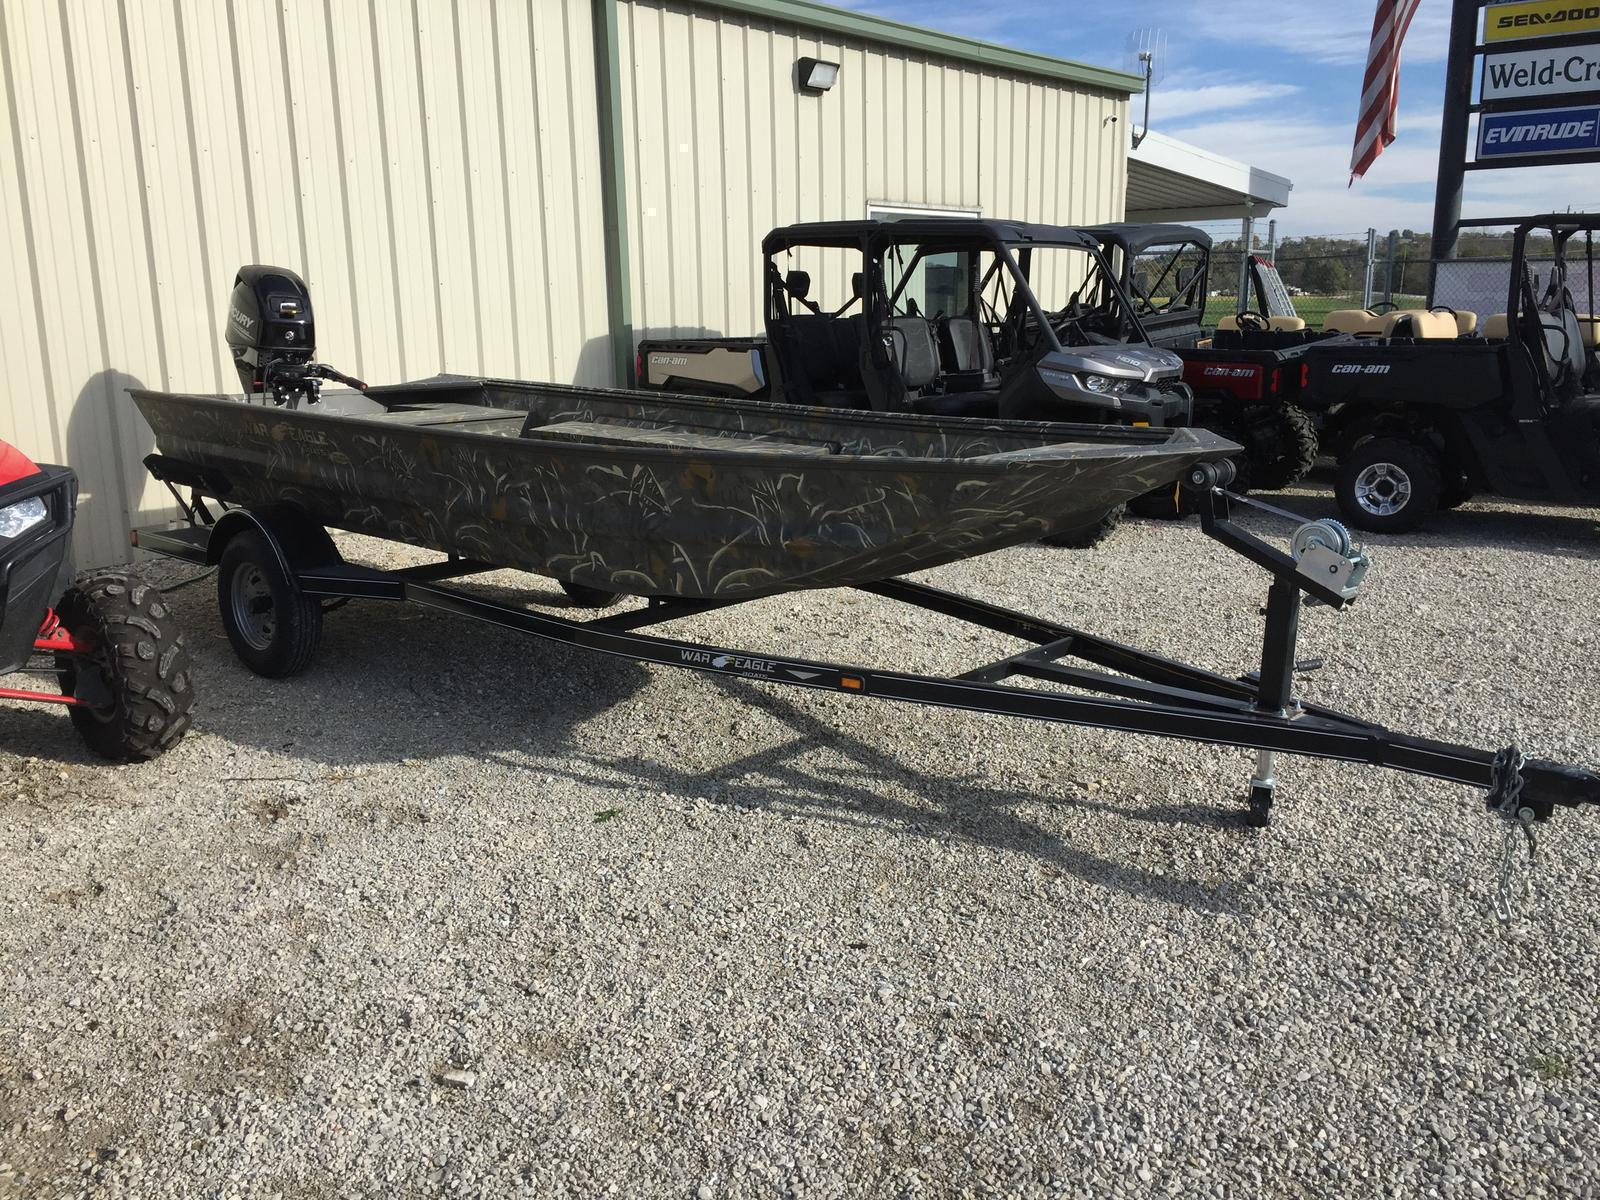 Inventory From Suzuki Marine And War Eagle Precision Water As Well Boat Trailers For Sale On Trailer Wiring 2016 Aluminum